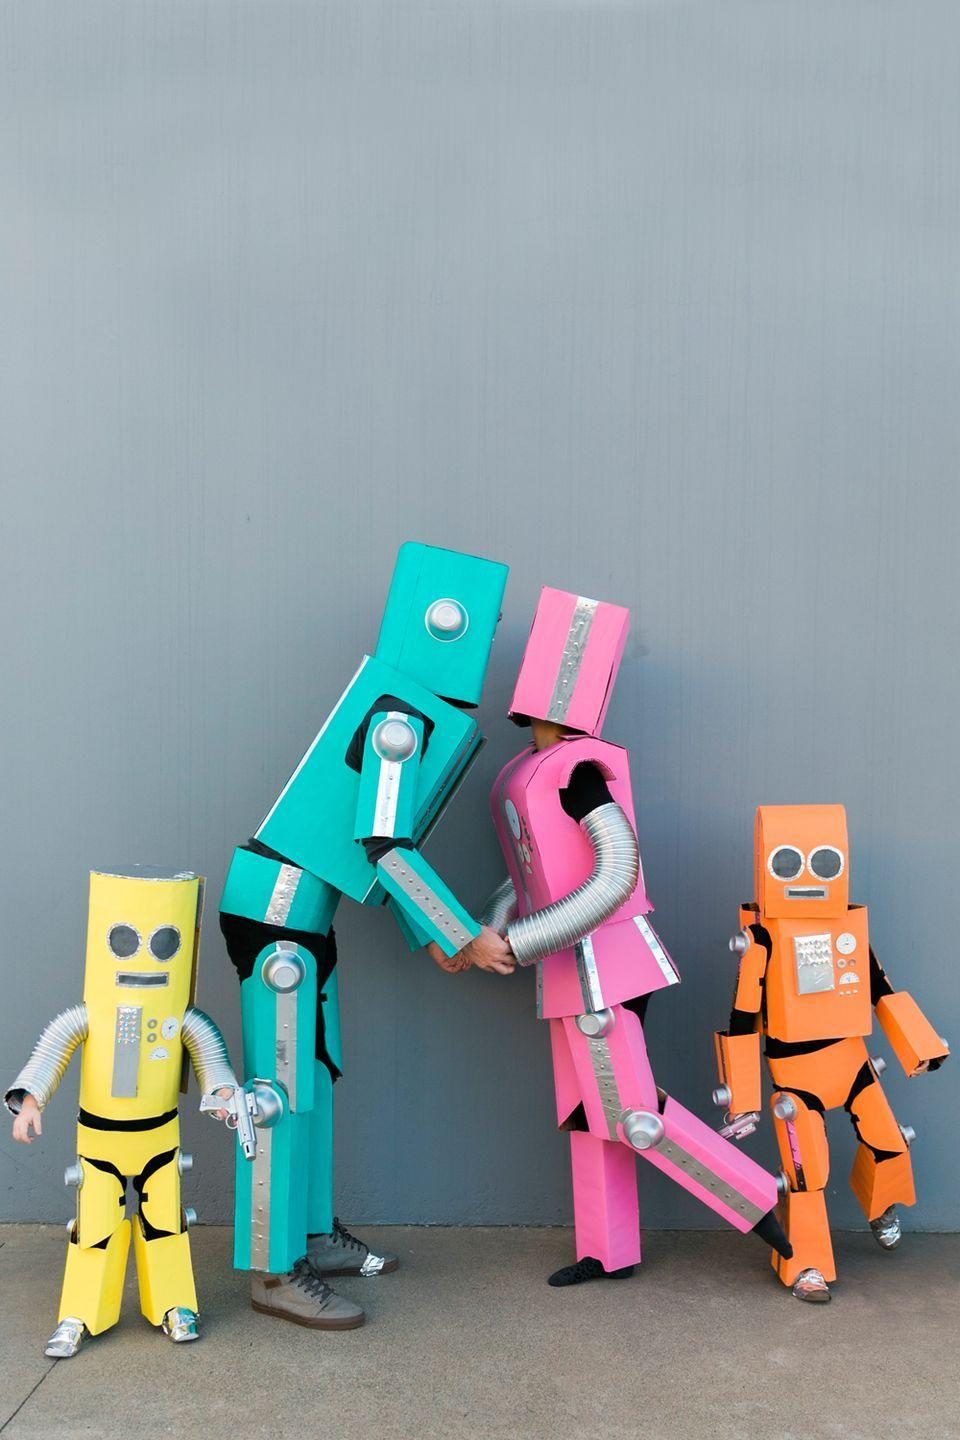 """<p>Robots have feelings too, you know! ...Well, these family-friendly, brightly colored ones do, anyway.</p><p><strong>Get the tutorial at <a href=""""https://tellloveandparty.com/2017/09/diy-robot-family-costume.html"""" rel=""""nofollow noopener"""" target=""""_blank"""" data-ylk=""""slk:Tell Love & Party"""" class=""""link rapid-noclick-resp"""">Tell Love & Party</a>. </strong></p><p><a class=""""link rapid-noclick-resp"""" href=""""https://www.amazon.com/Corrugated-Cardboard-Sheets-24-Pack-Inserts/dp/B079QRBBFP?tag=syn-yahoo-20&ascsubtag=%5Bartid%7C10050.g.29074815%5Bsrc%7Cyahoo-us"""" rel=""""nofollow noopener"""" target=""""_blank"""" data-ylk=""""slk:SHOP CARDBOARD"""">SHOP CARDBOARD</a></p>"""